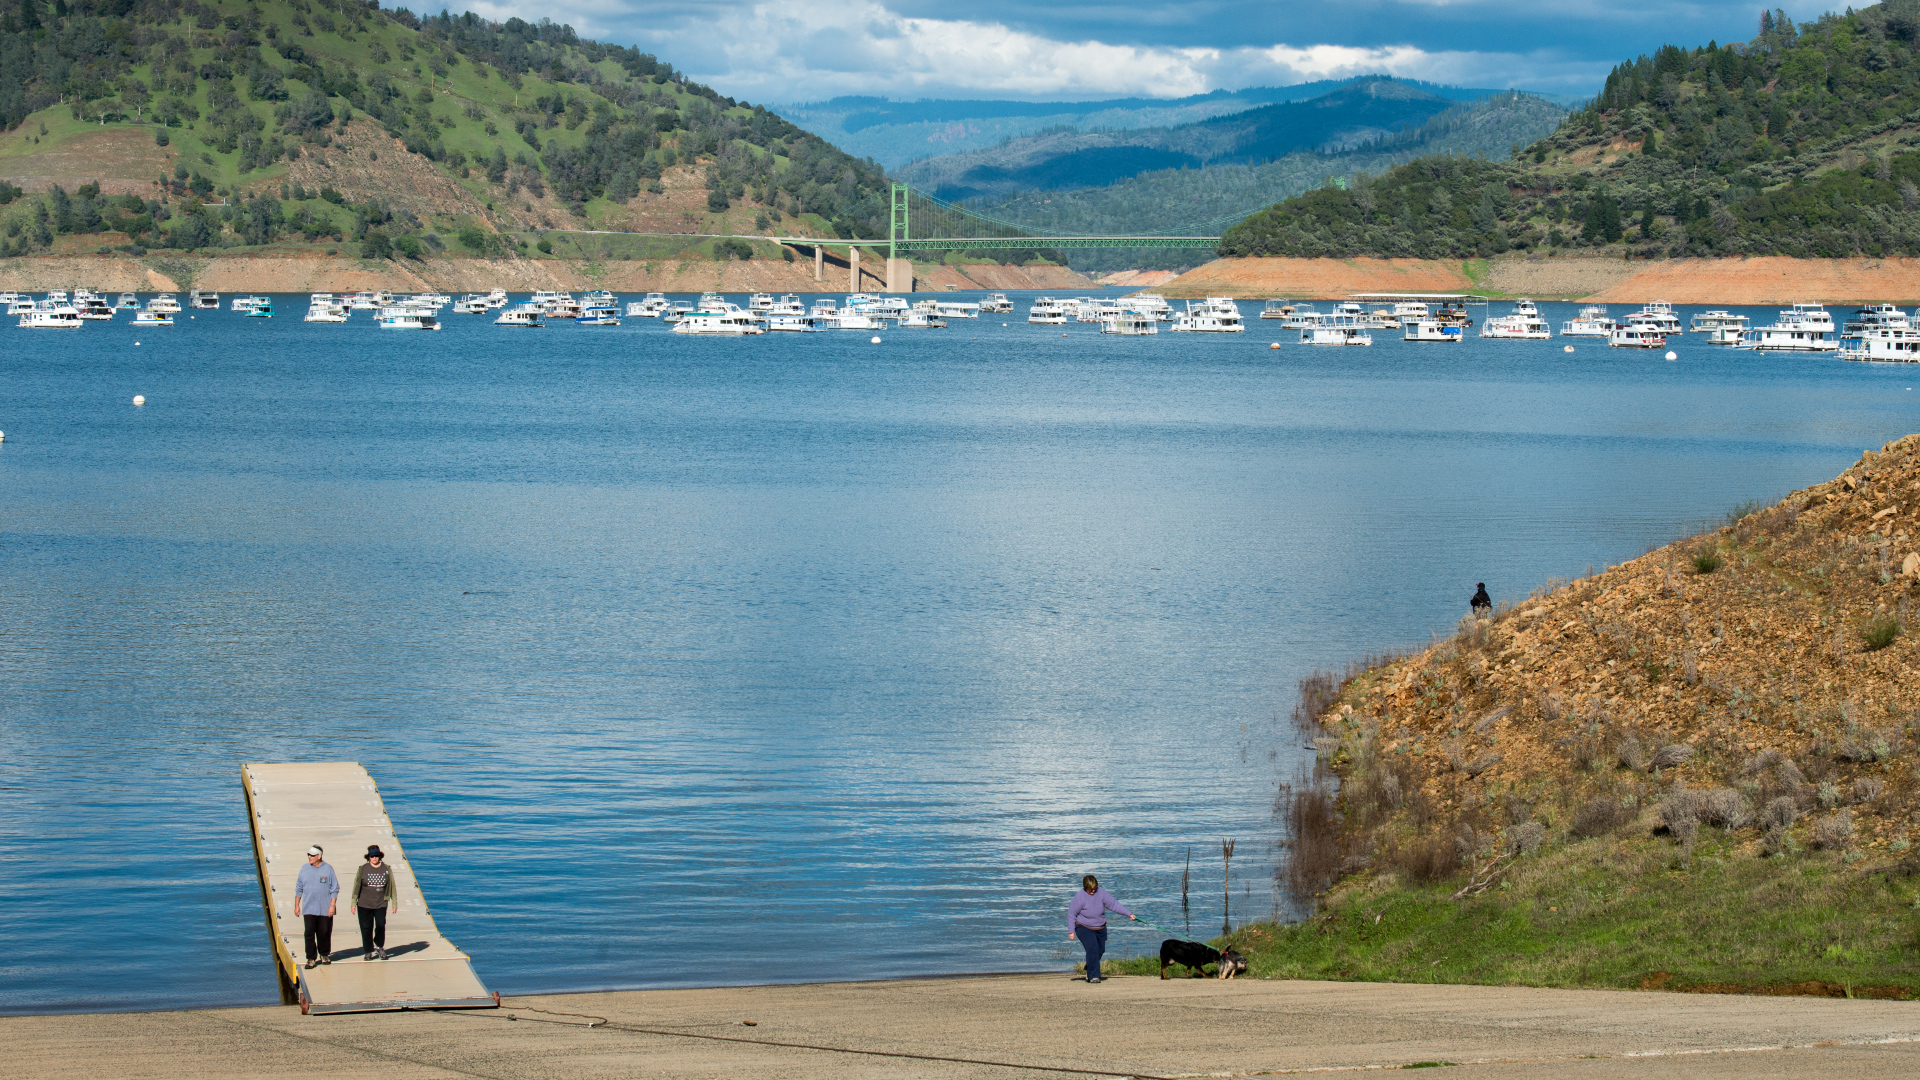 Photo Of Lake Oroville At 73 Capacity Noaa Climate Gov